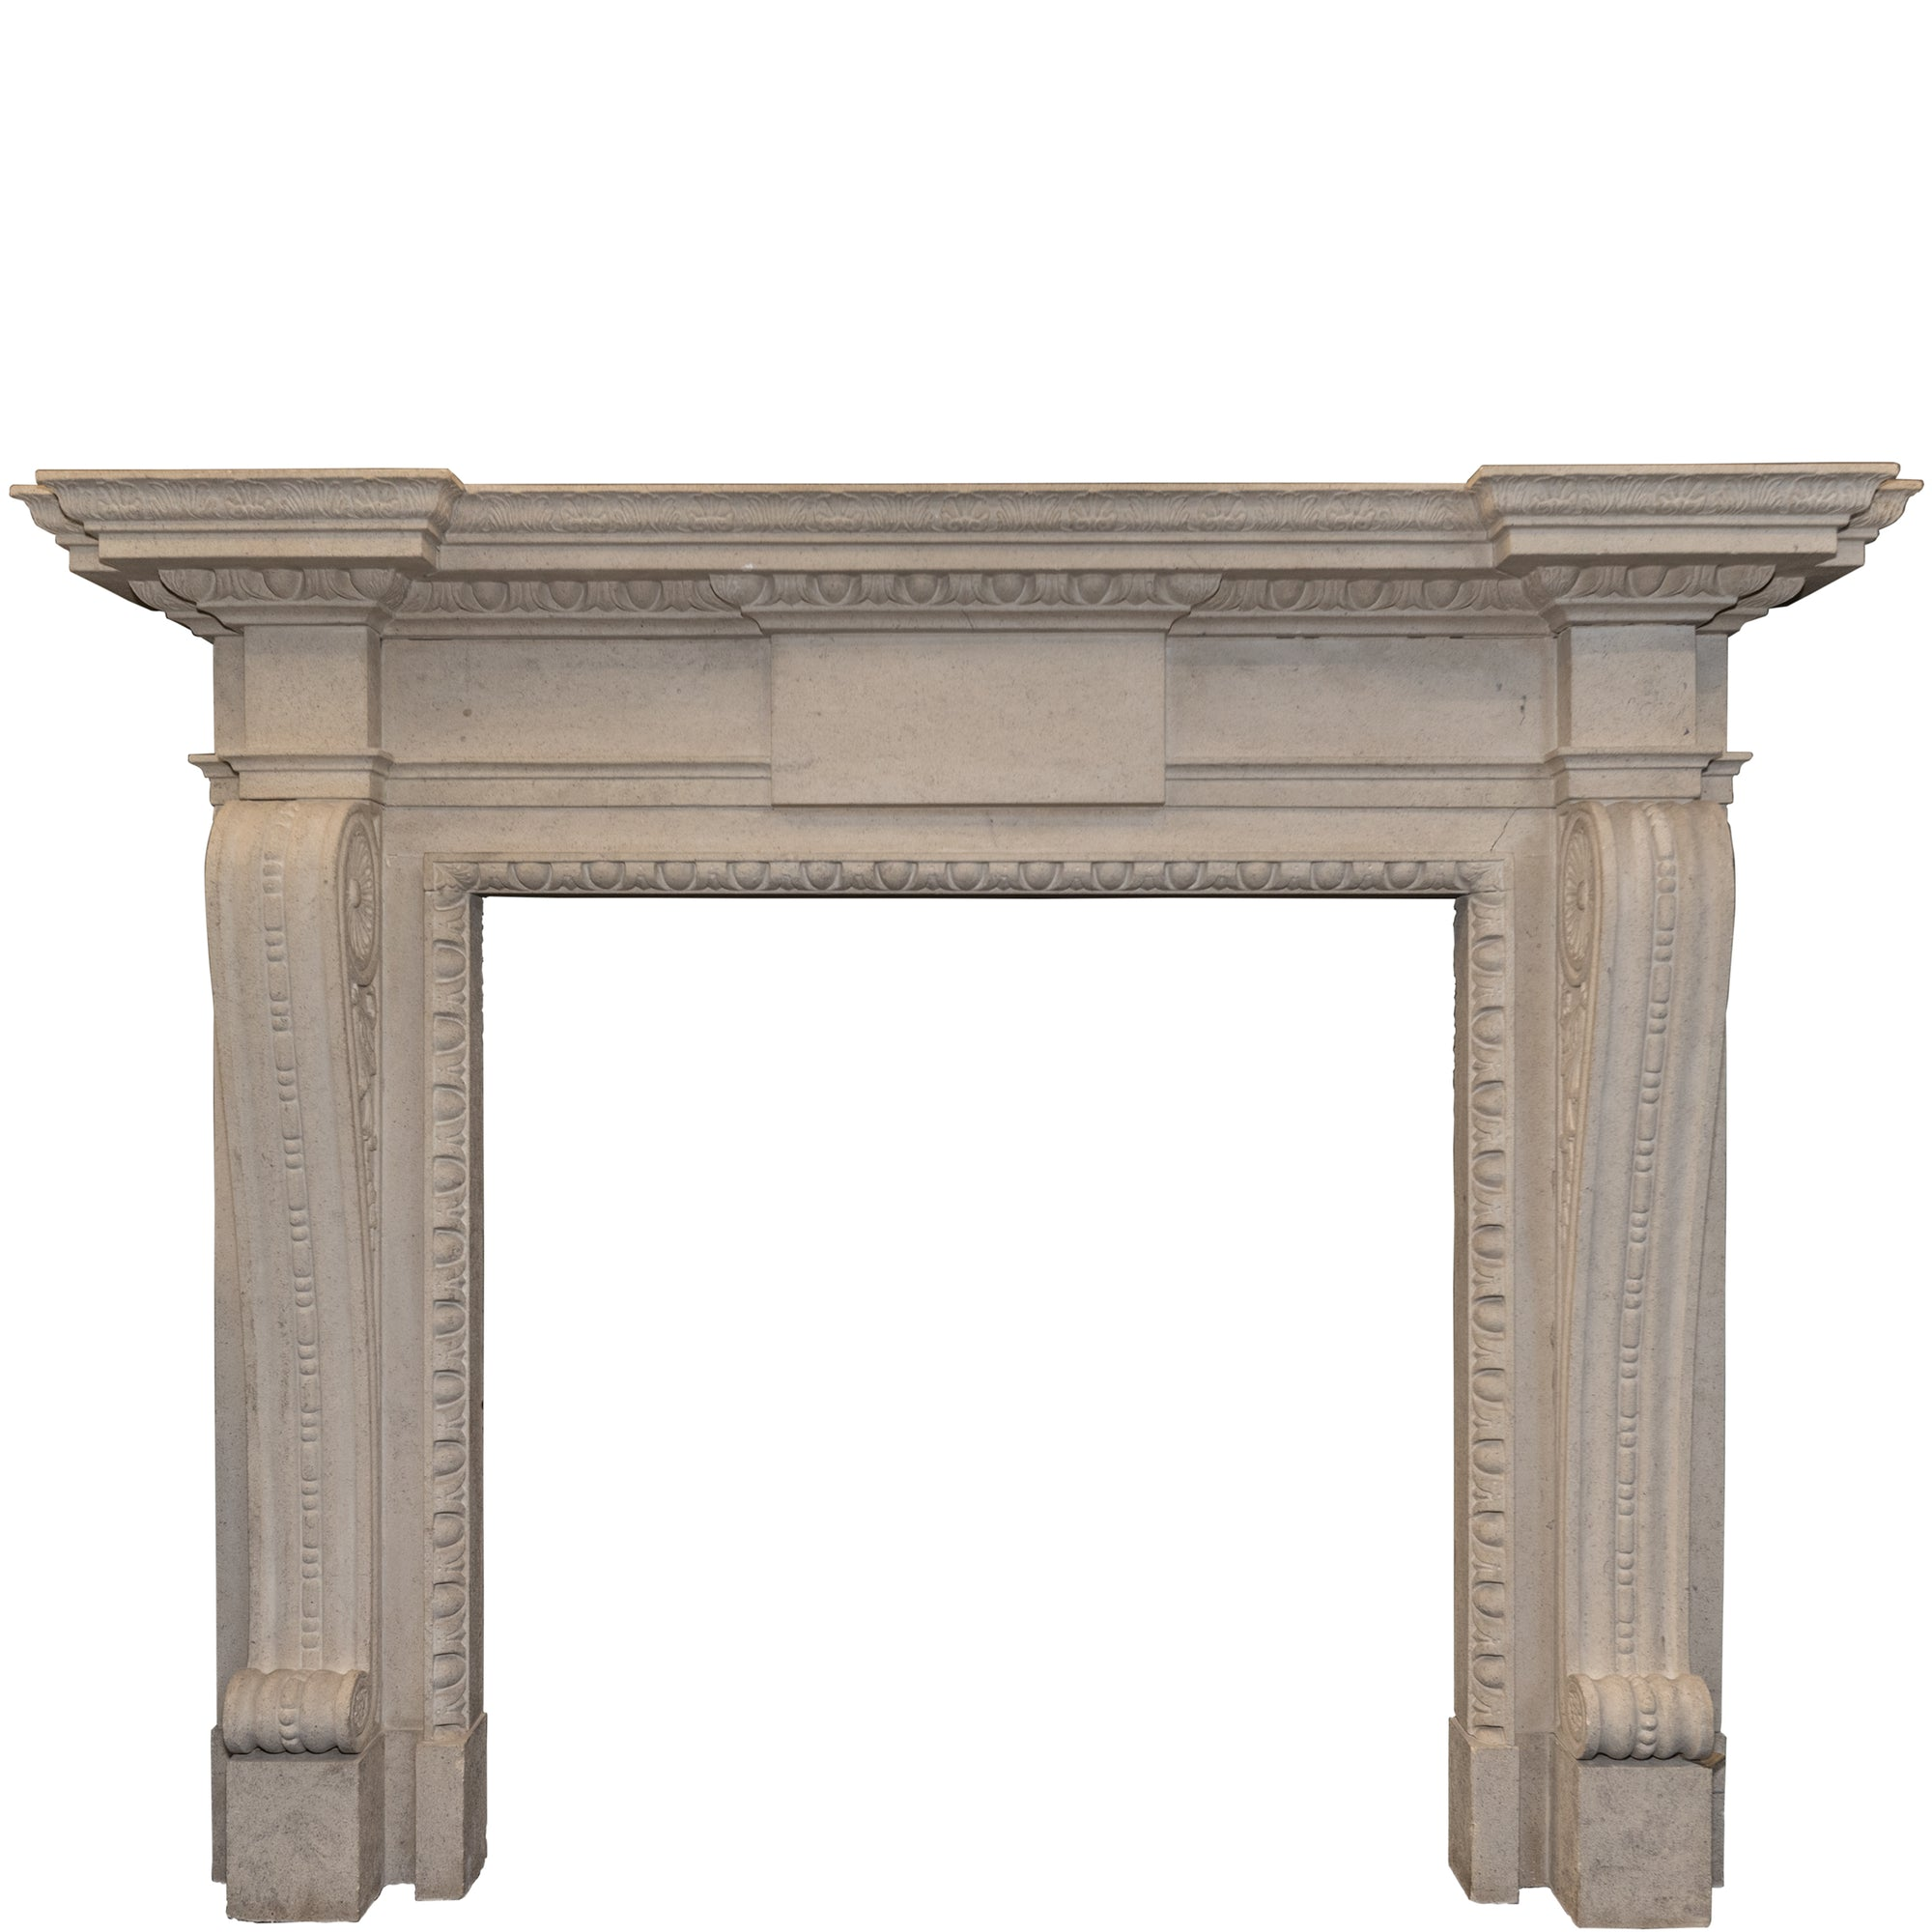 Neoclassical Style Bath stone Fireplace Surround - architectural-forum